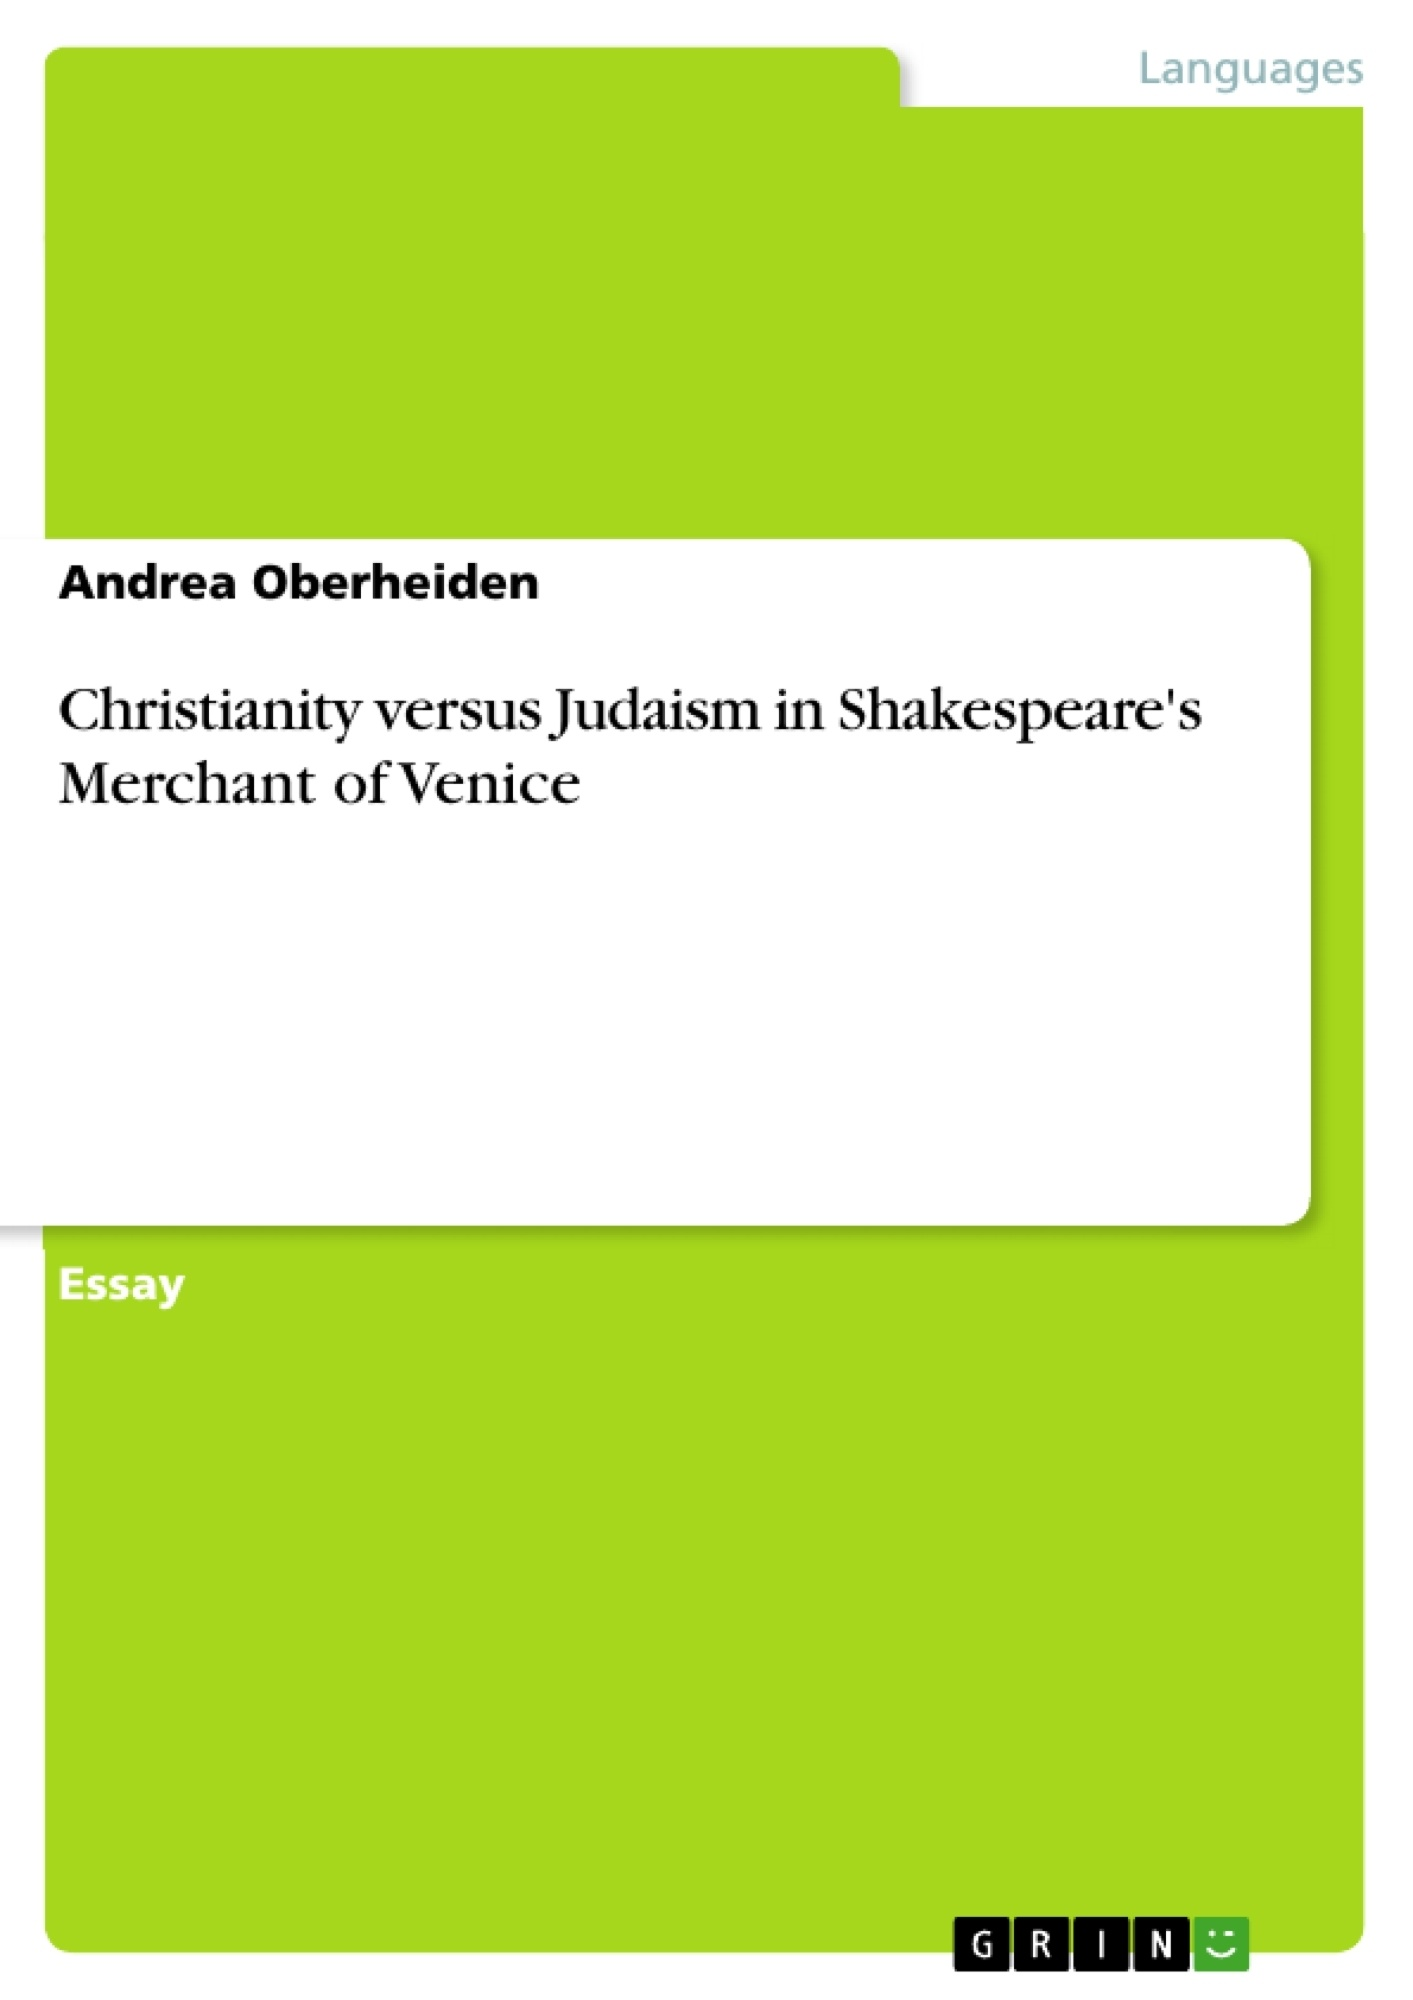 shylock essay bassanio in the merchant of venice shylock and  christianity versus judaism in shakespeare s merchant of venice christianity versus judaism in shakespeare s merchant